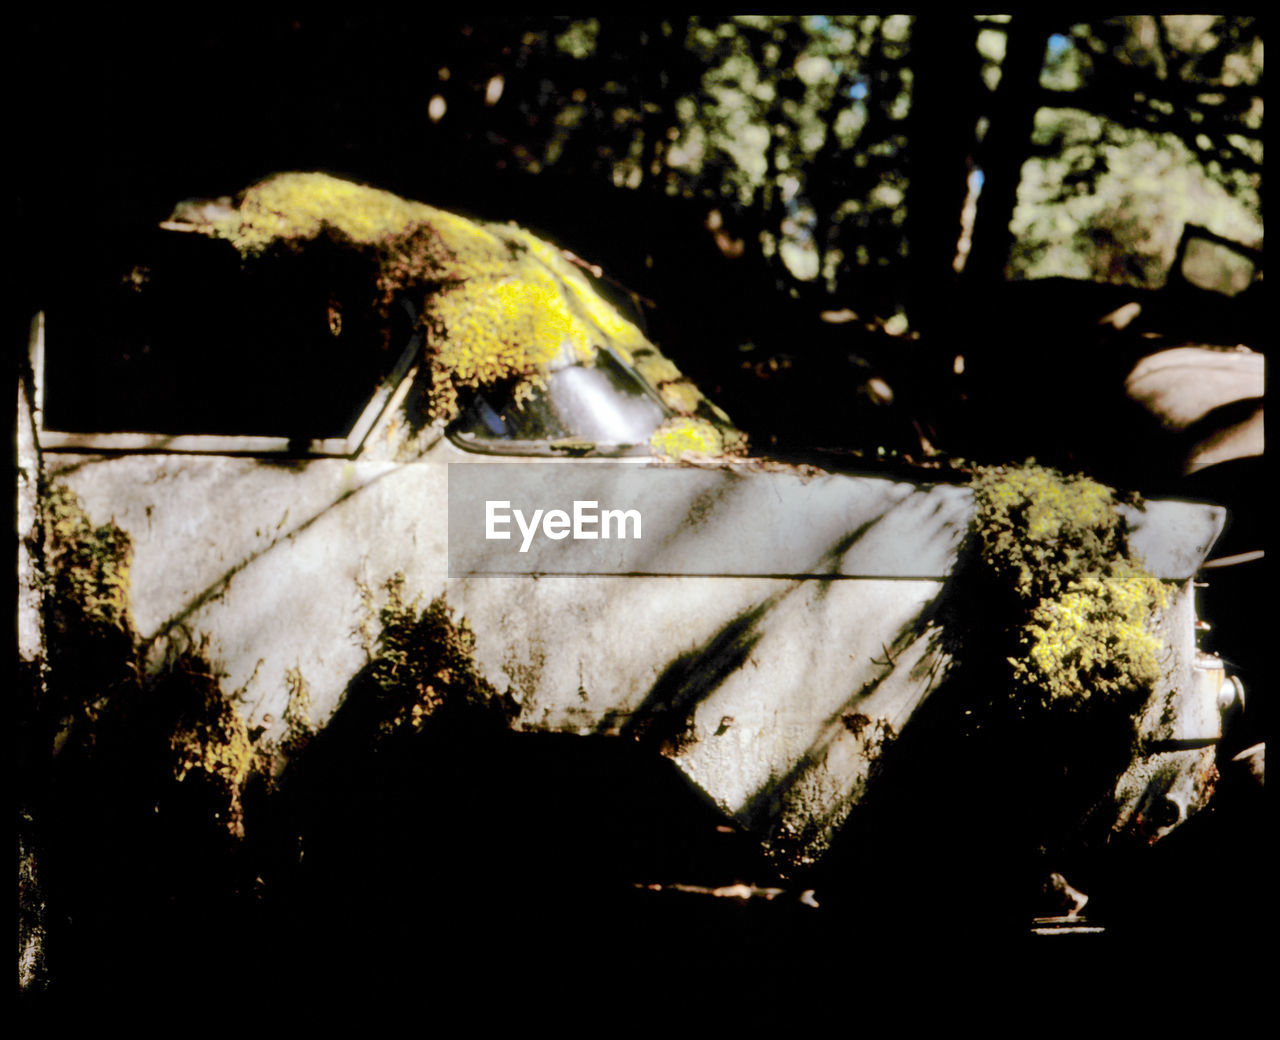 The beauty of the abandonded car cemetery Båstnäs Abandoned Analogue Photography Auto Båstnäs Båstnäs Töcksfors Car Cemetery Civilization Film Photography Forrest History Left Alone Medium Format Film Moss Nature No People Outdoors Rust Scandinavia Slidefilm Sun Trip Vintage Vintage Cars